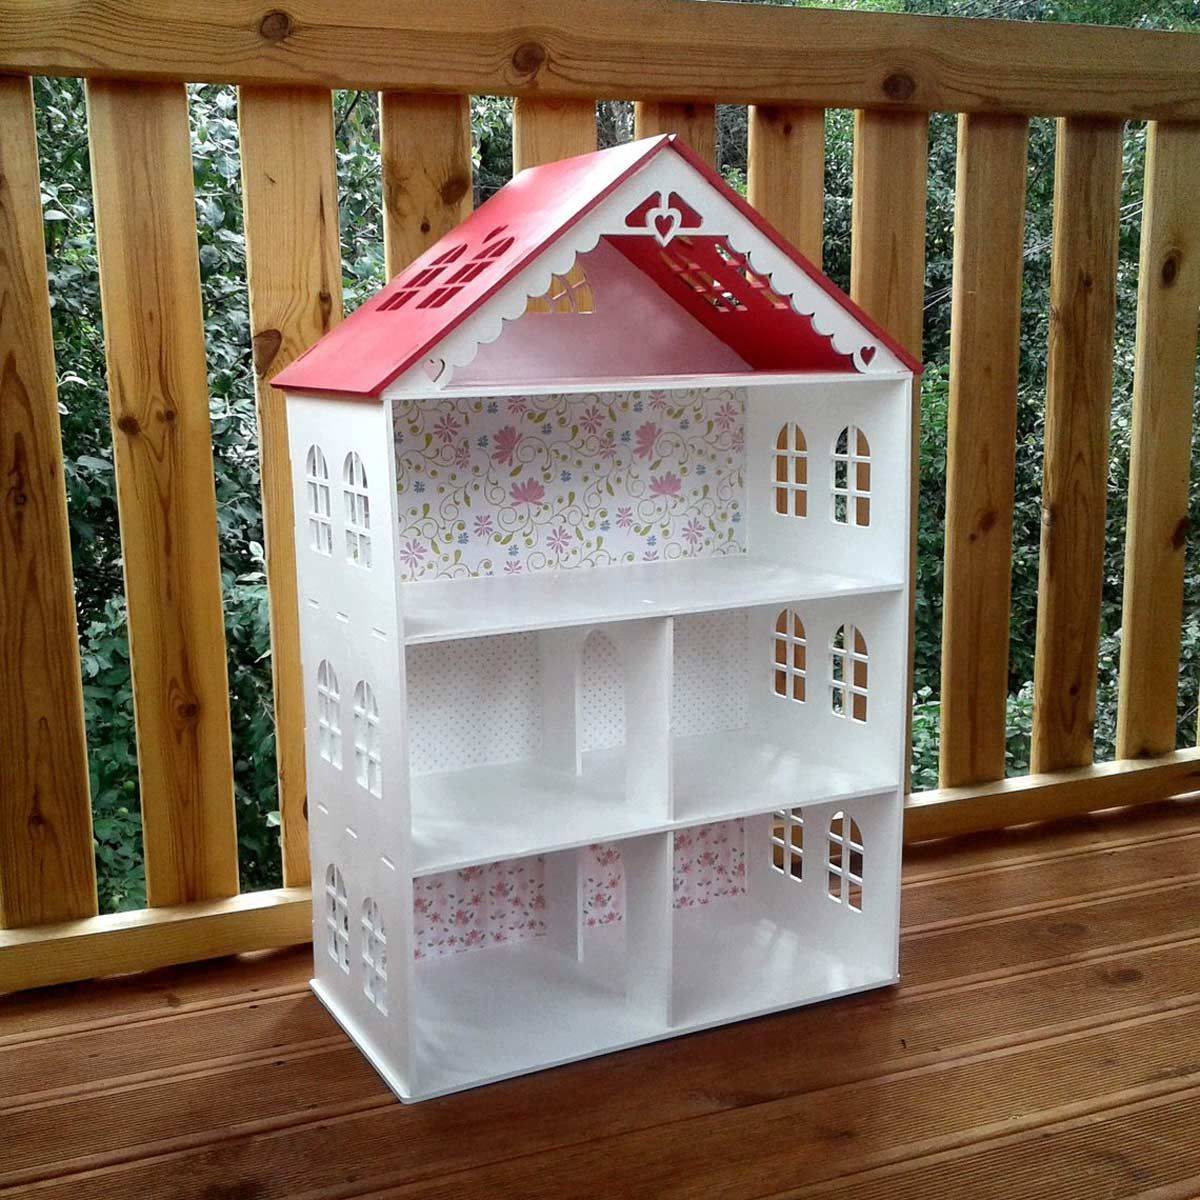 10 Homemade Barbie Houses You Wish You Lived In Homemade